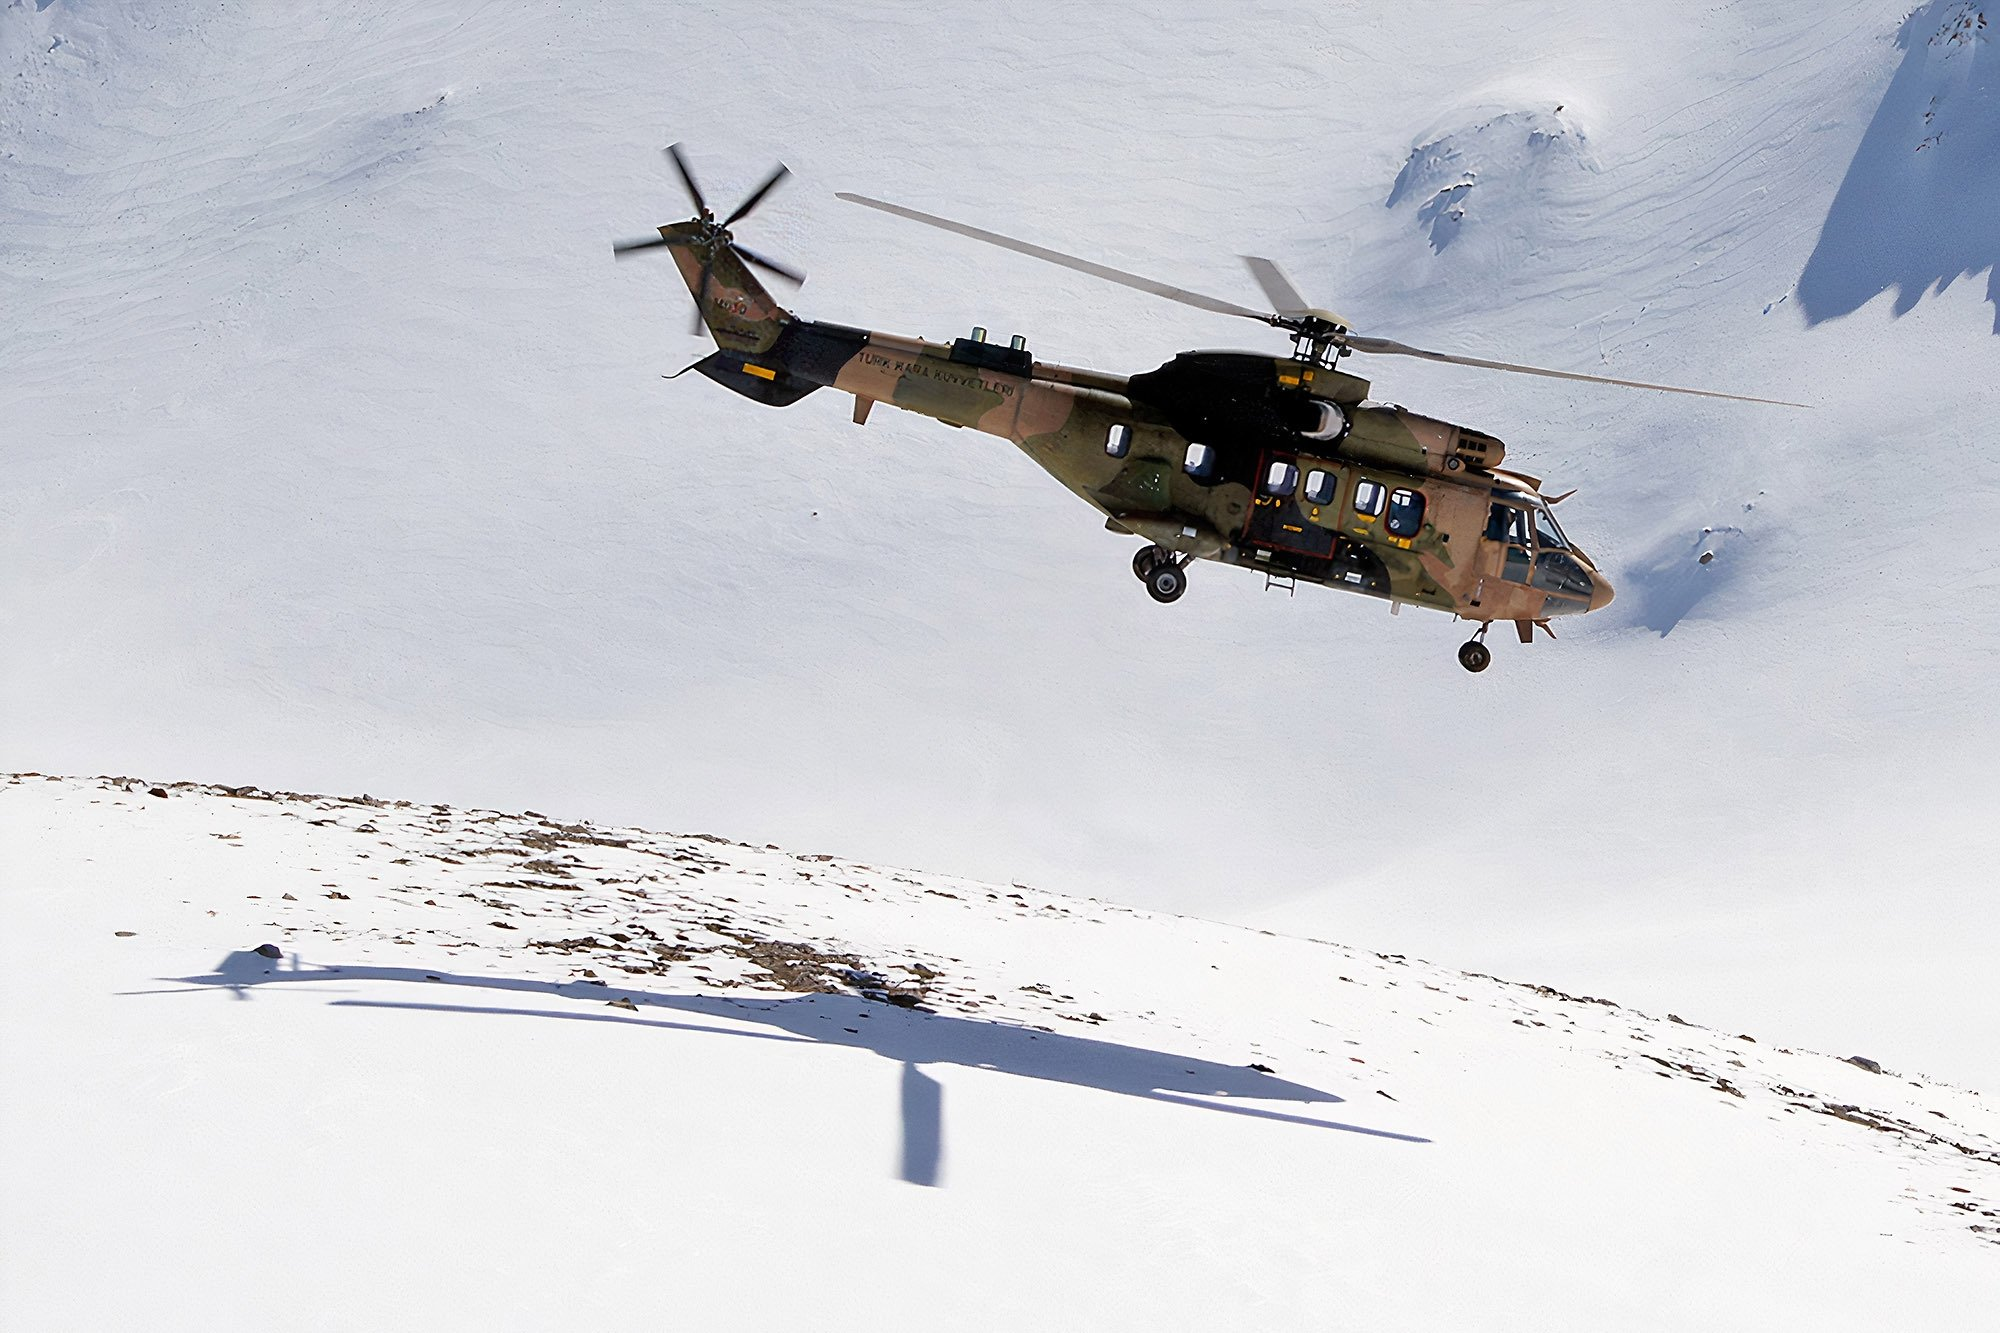 9 killed, 4 injured as military helicopter crashes in Turkey   Daily Sabah